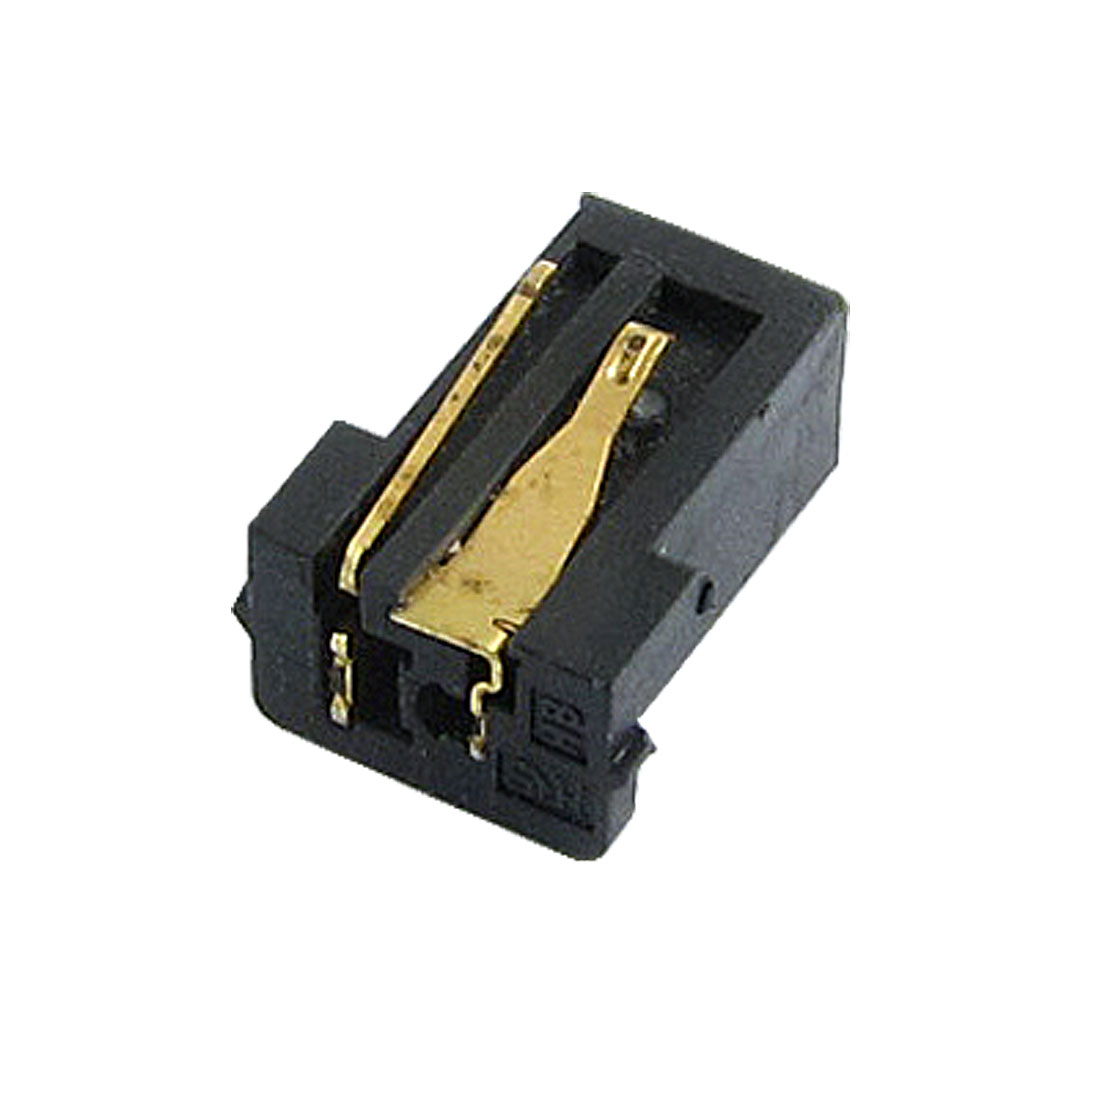 Replacement Part Charging Port Connector for Nokia E63